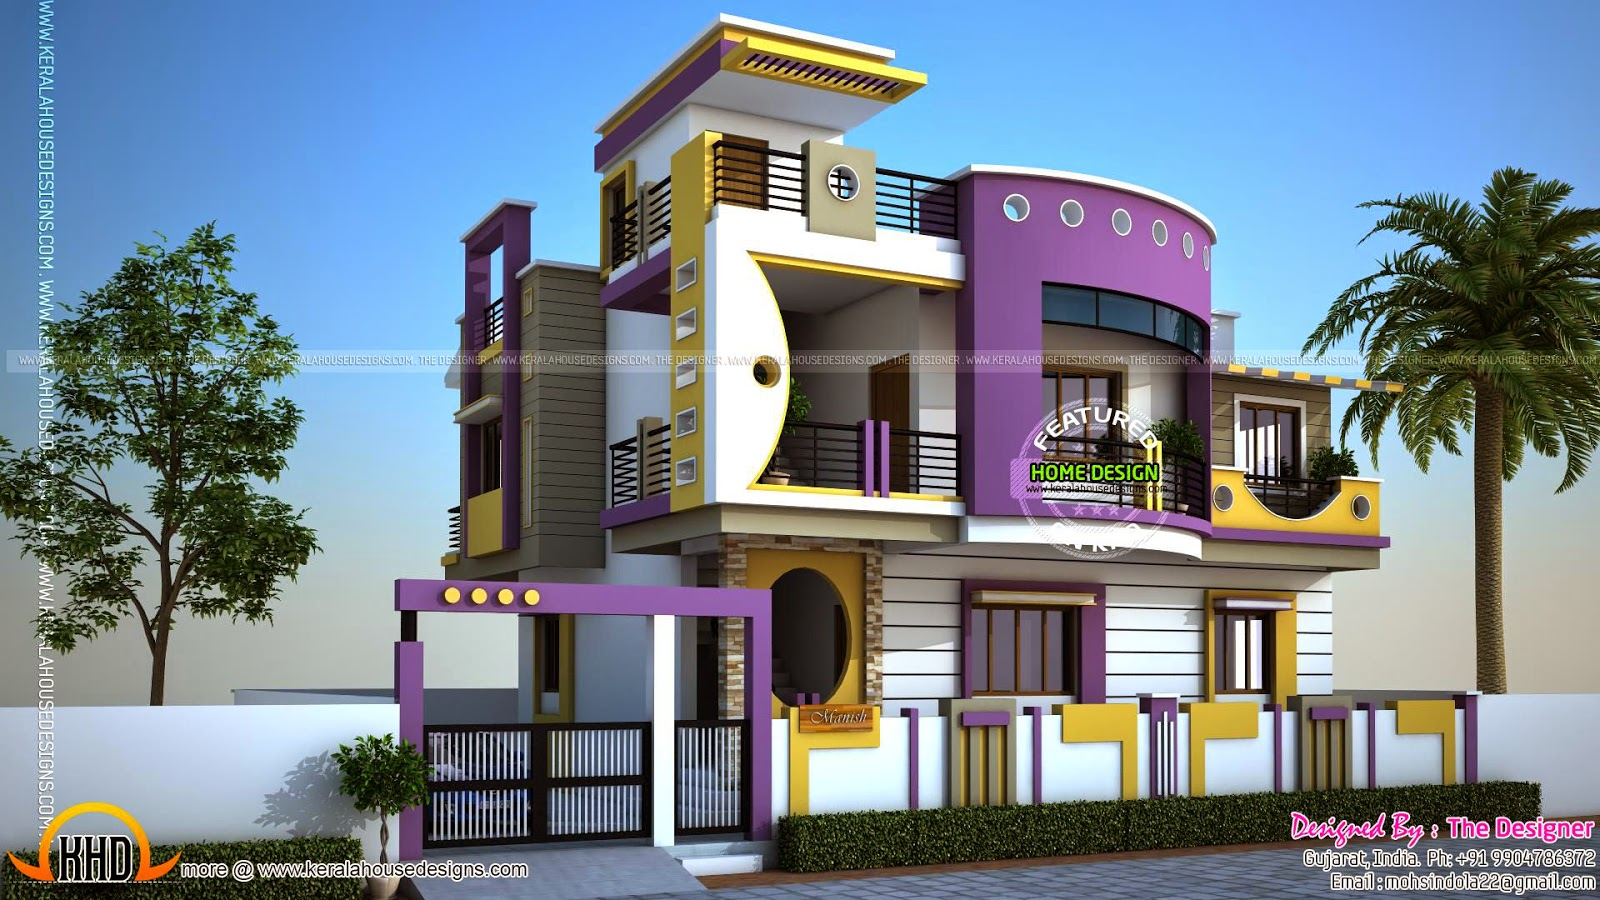 House exterior designs in contemporary style kerala home for Gallery house exterior design photos